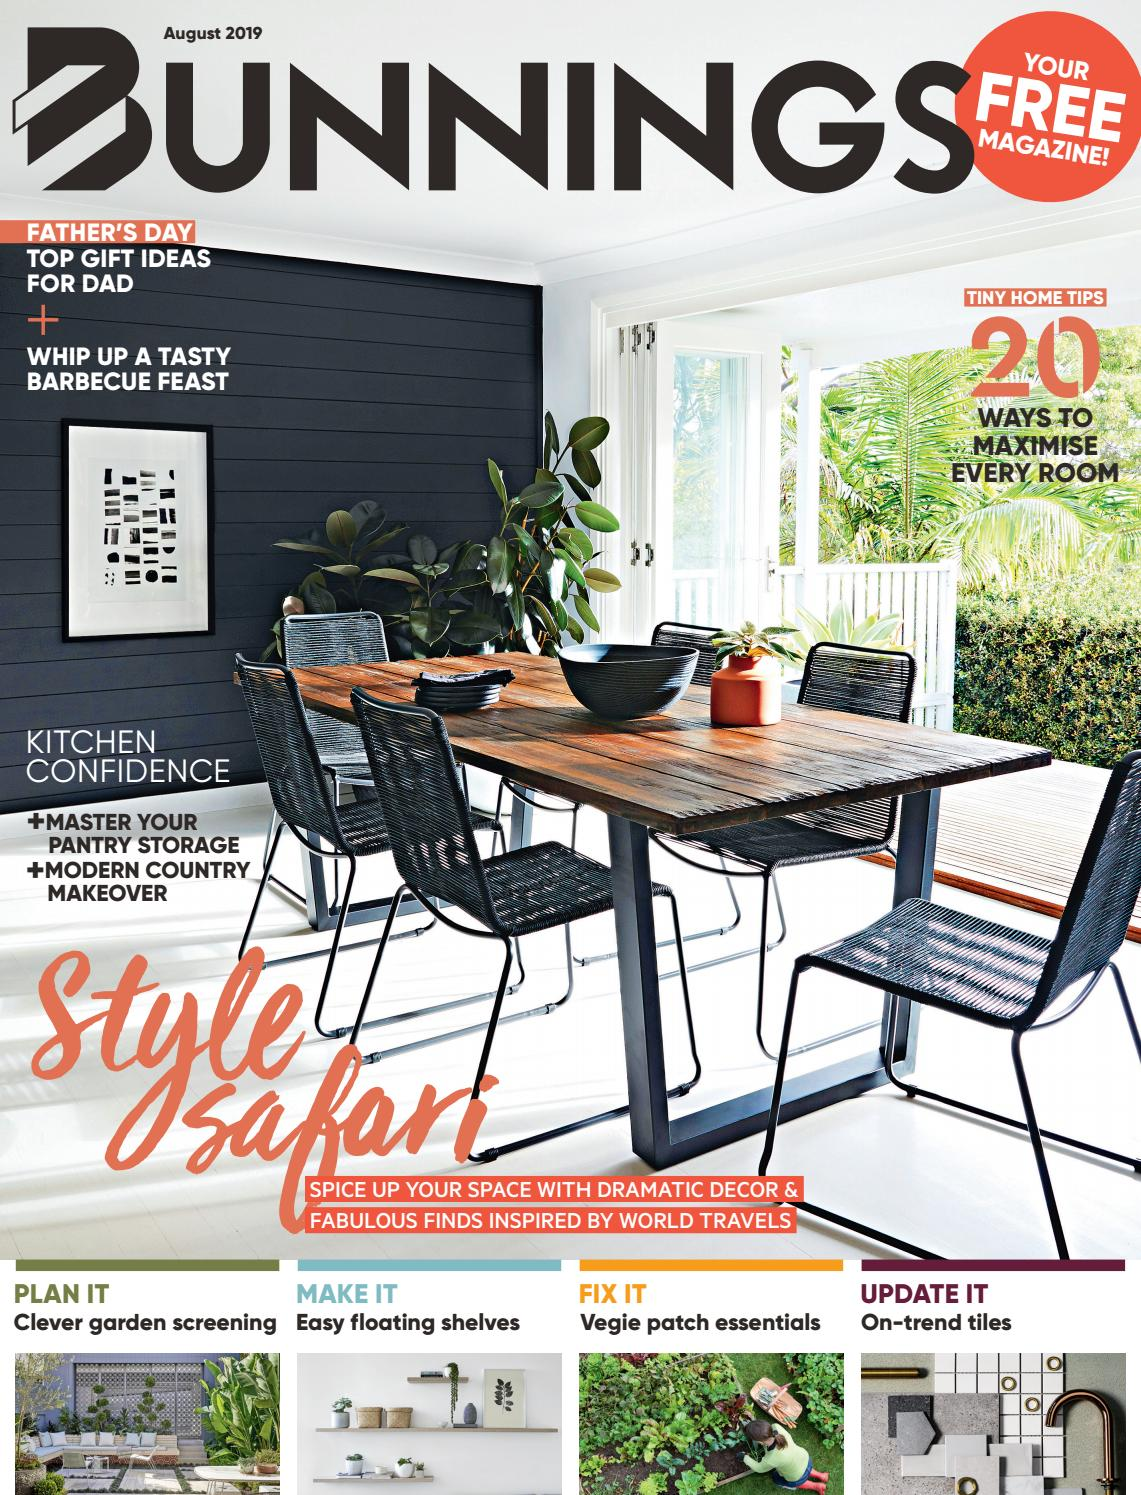 Bunnings Magazine August 2019 By